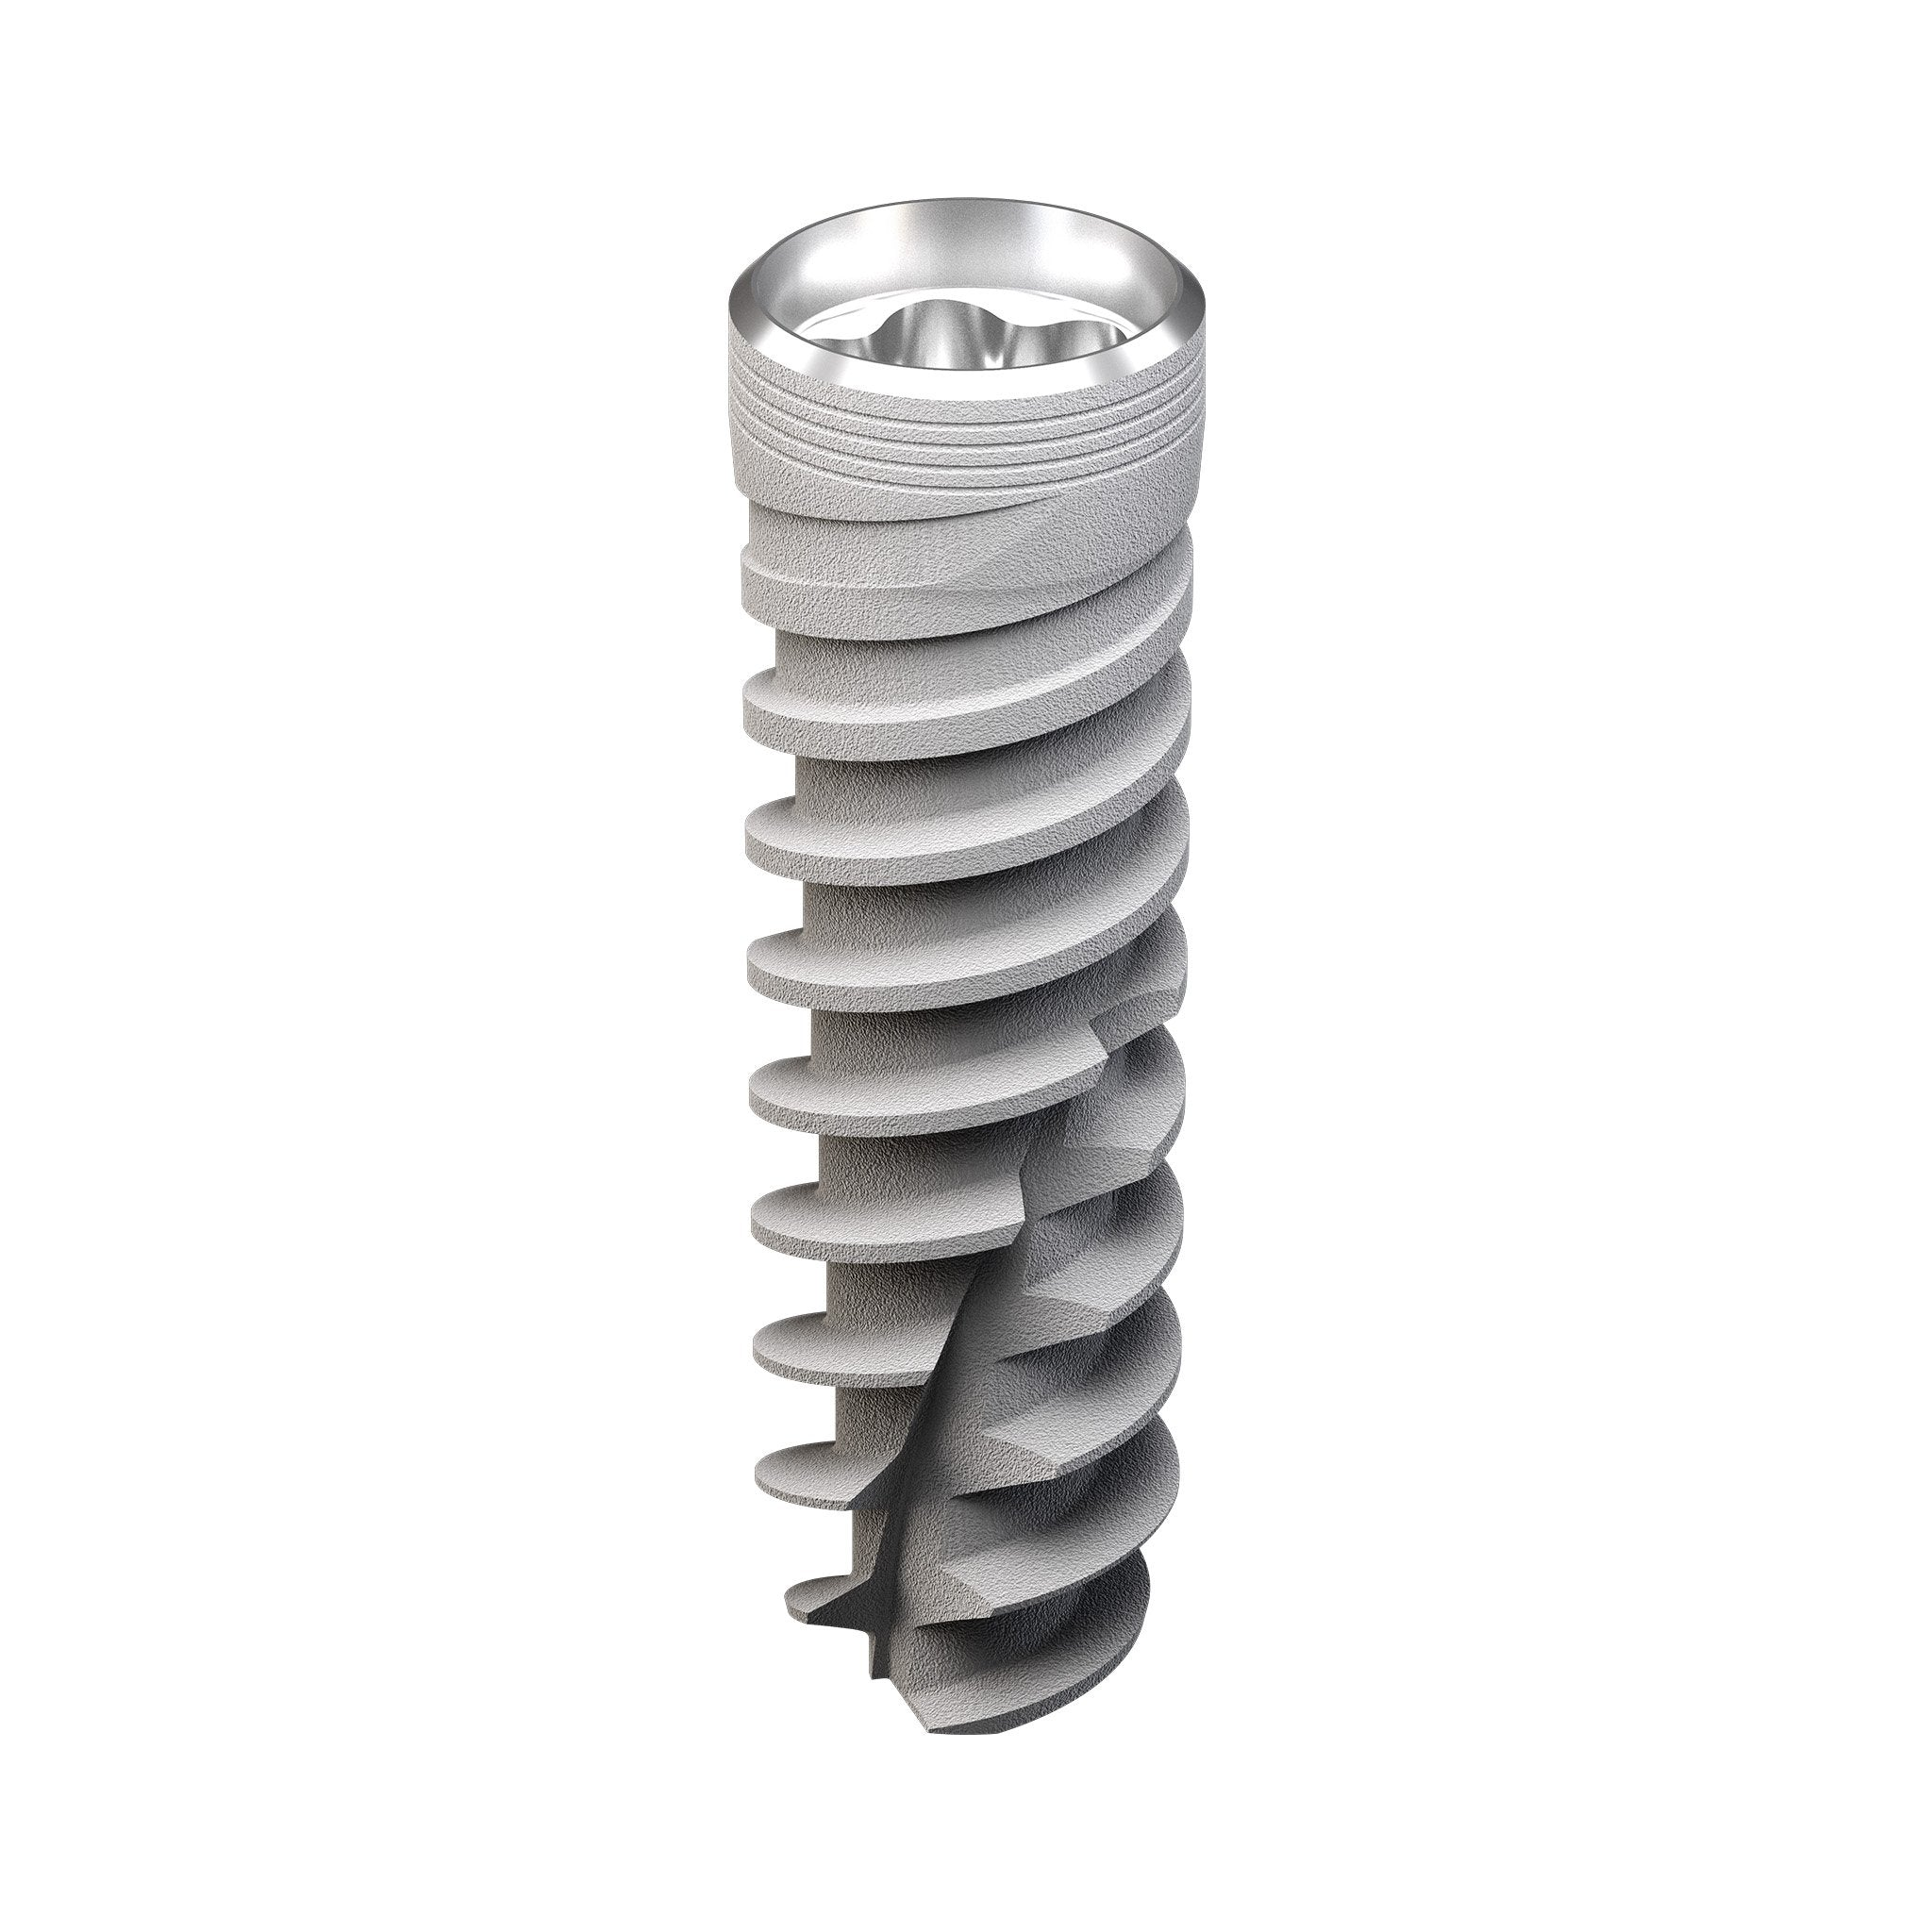 Prima Plus™ Implant RD Ø 4.1 x 13.0mm | K2